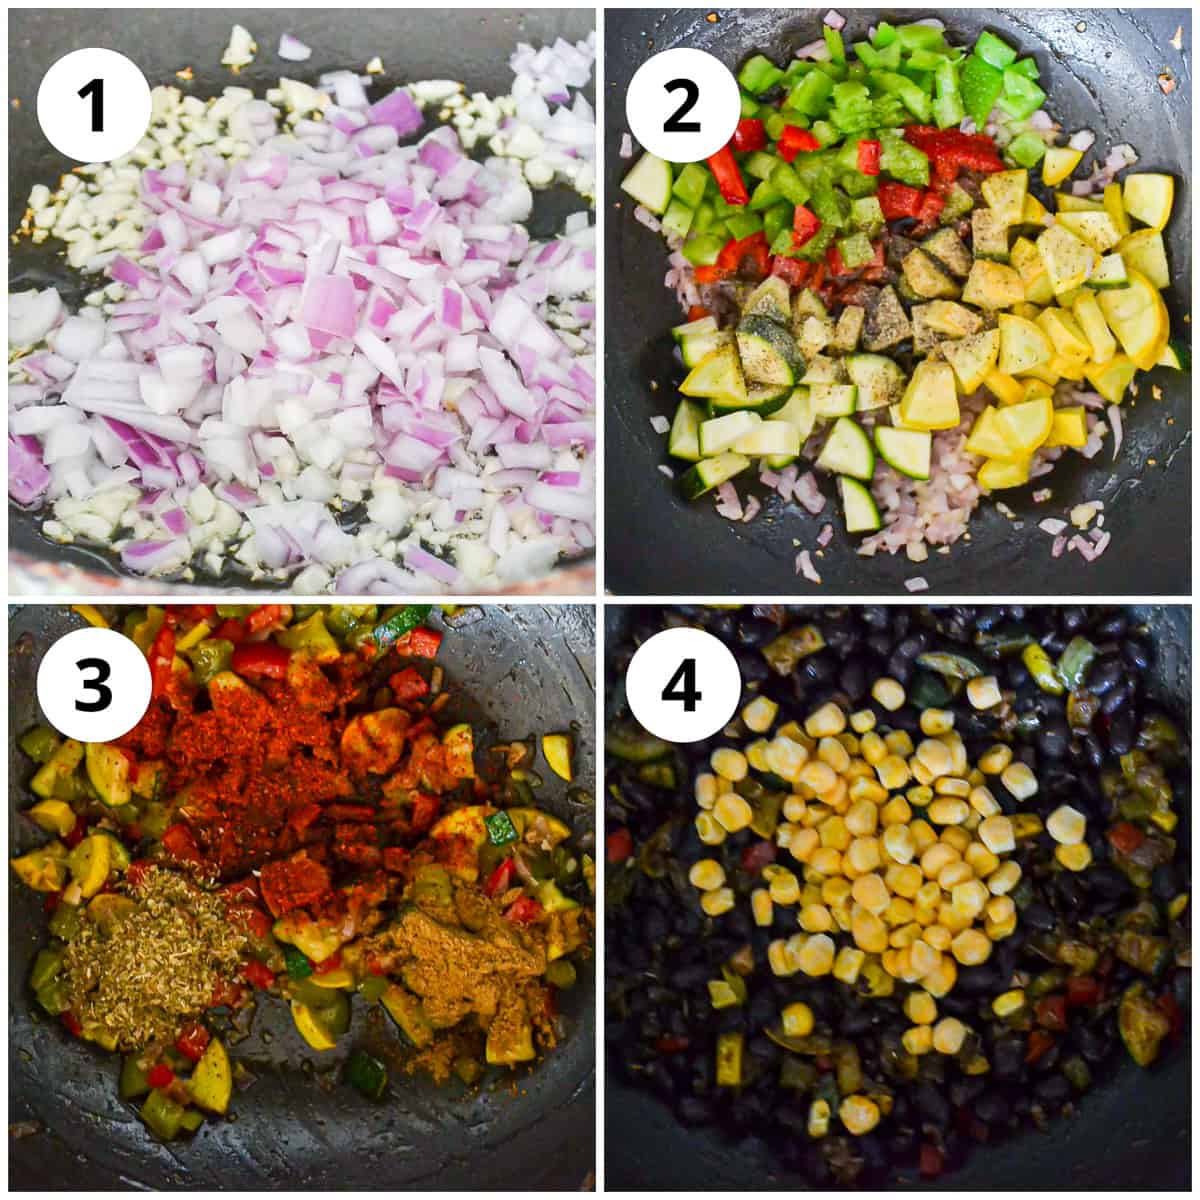 Four photos showing how to make the black bean and vegetable filling